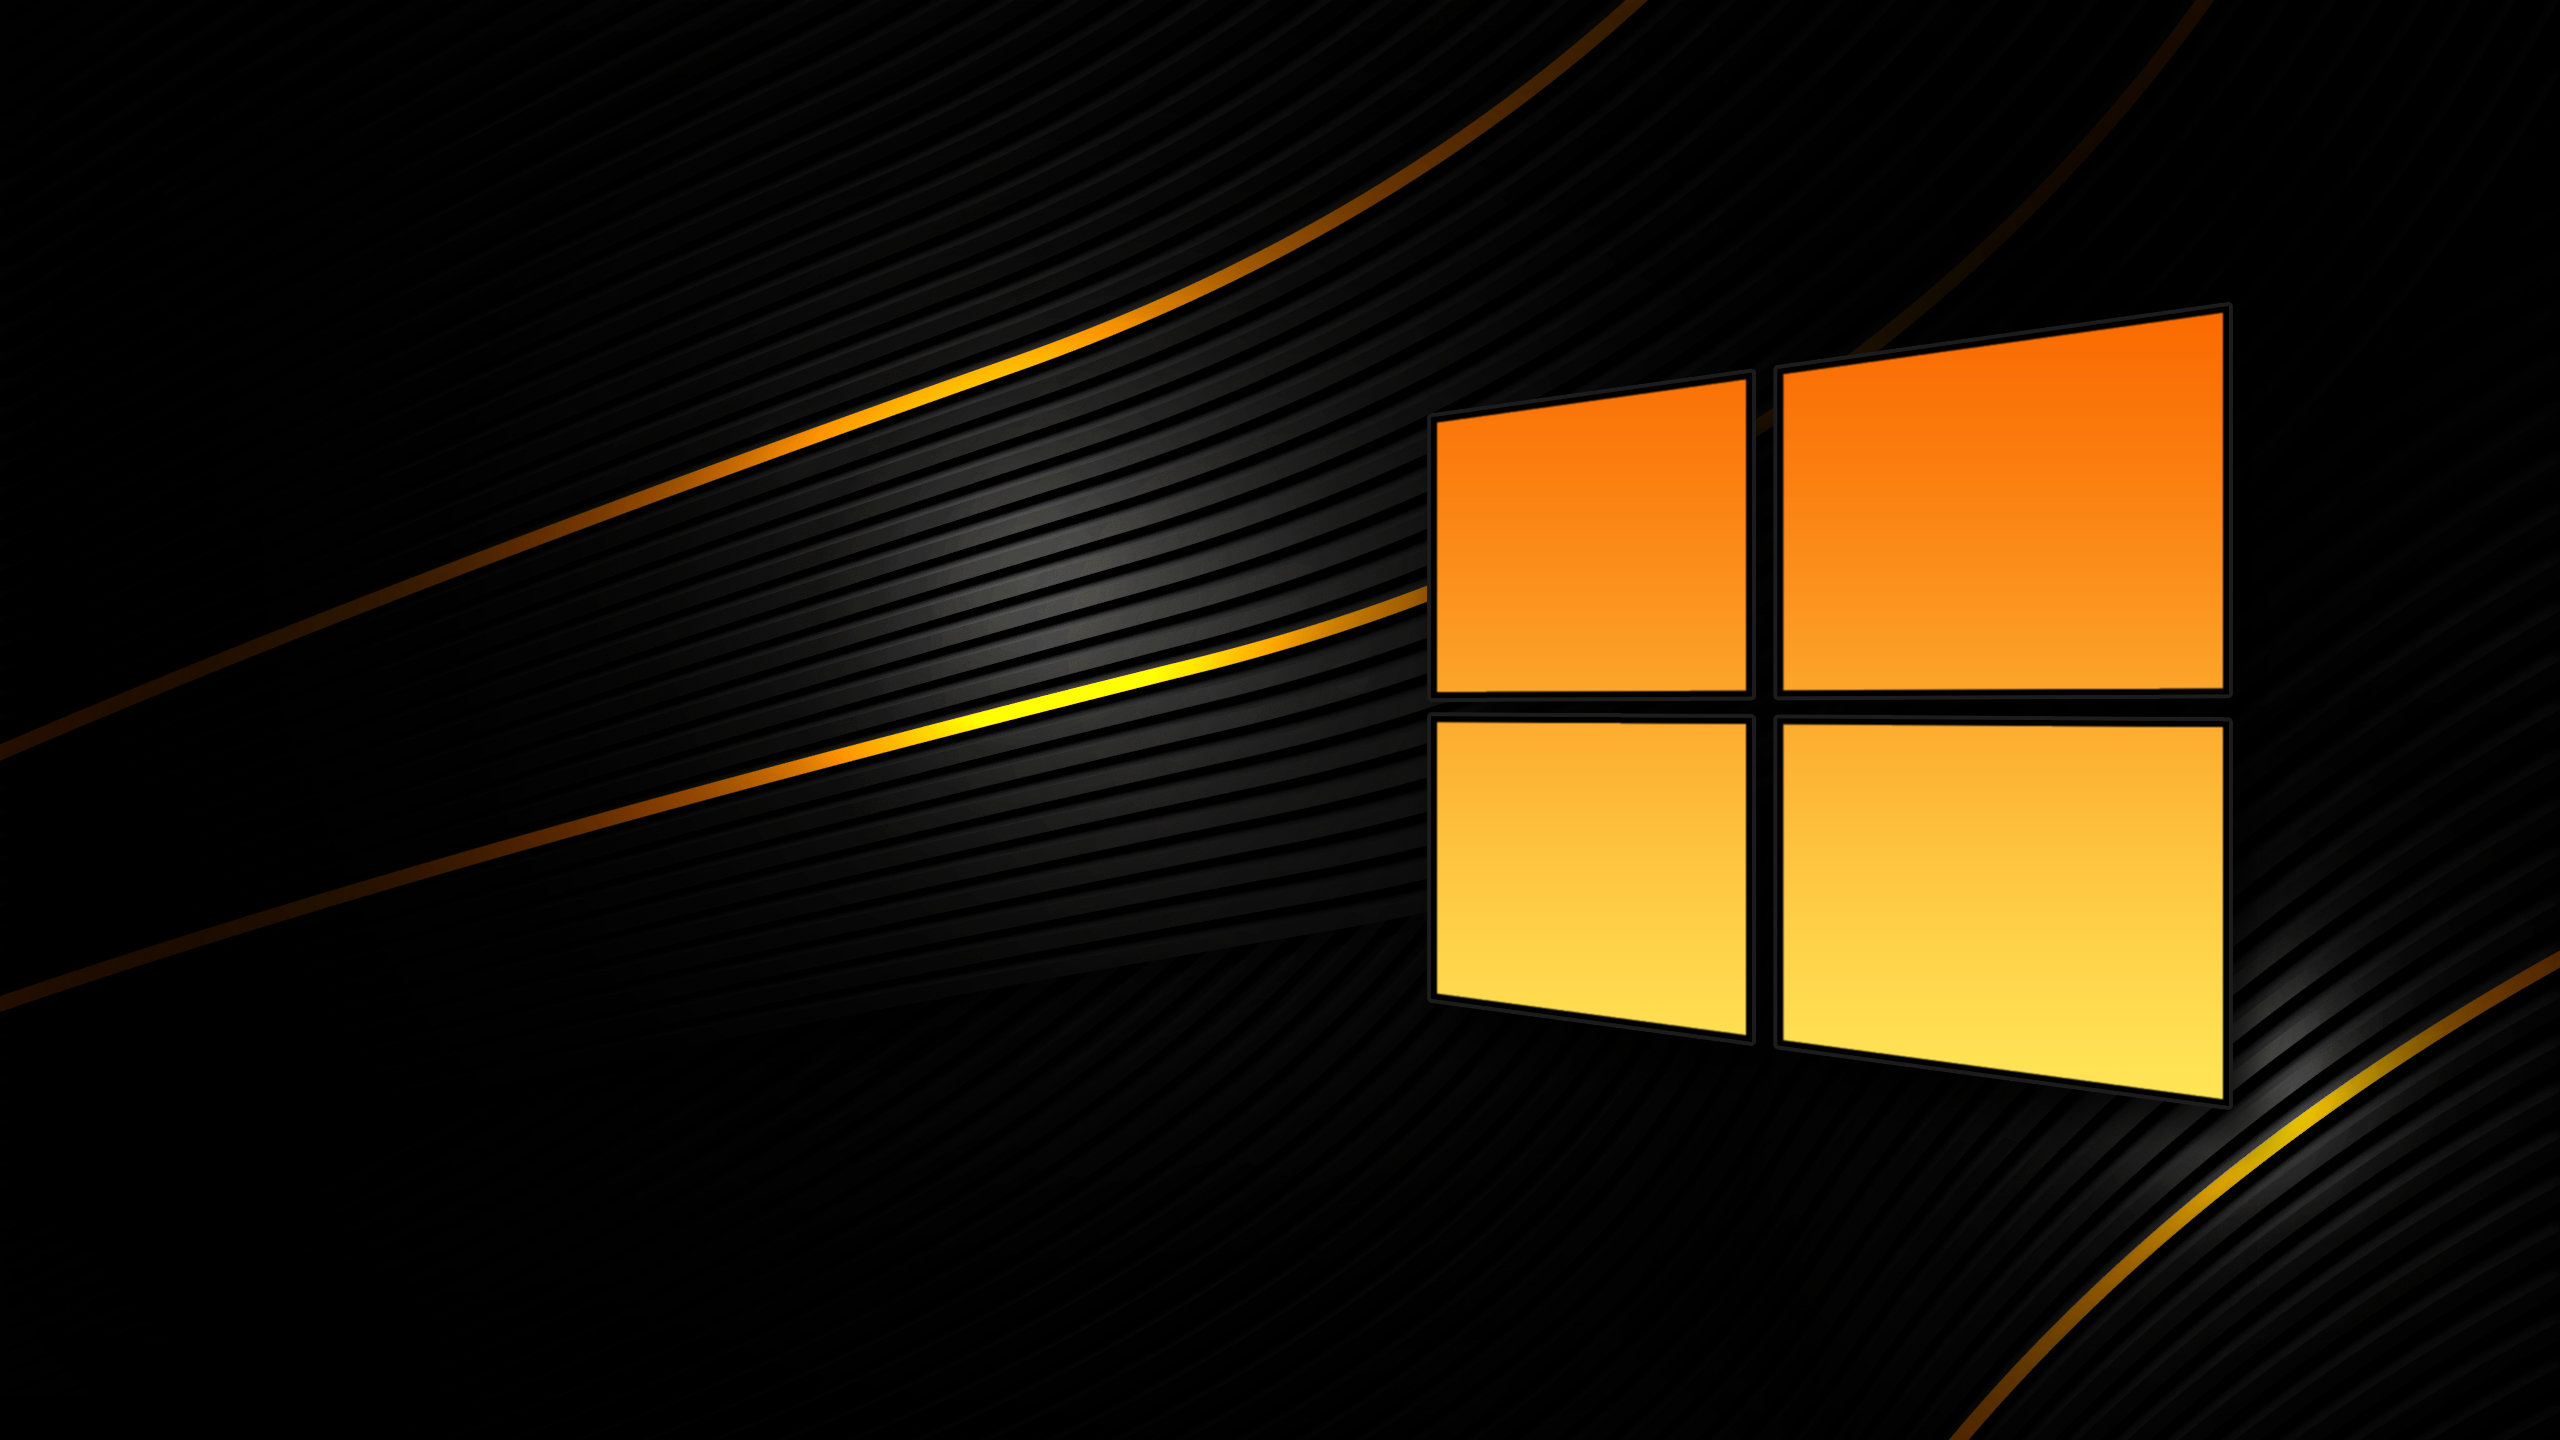 Windows Screen Wallpaper